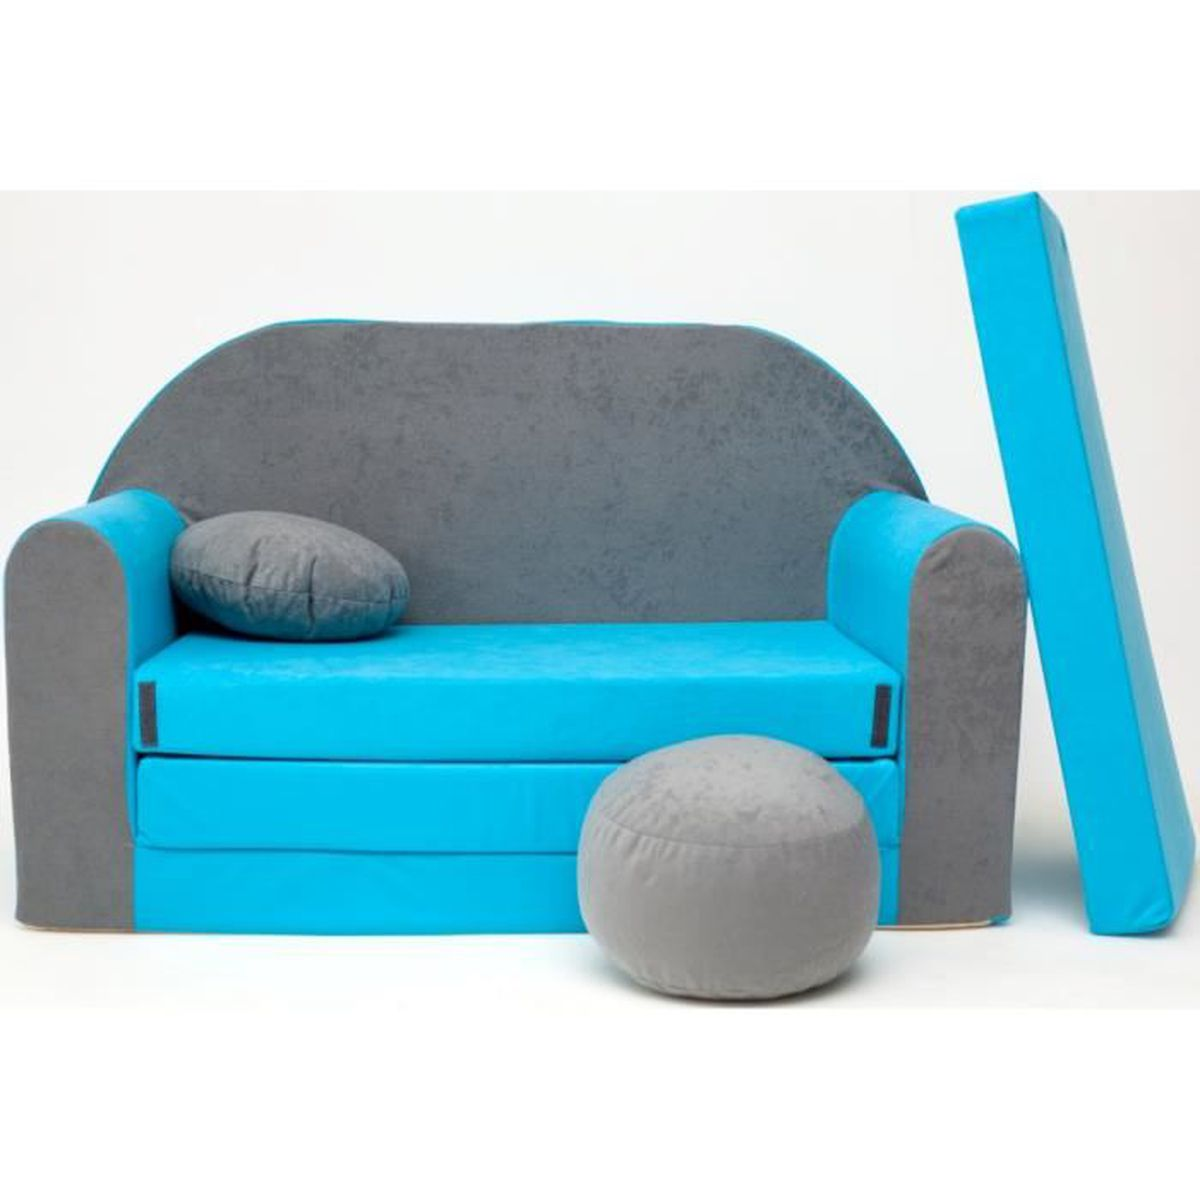 Canape sofa enfant 2 places convertible gris bleu achat for Petit canape lit 2 places